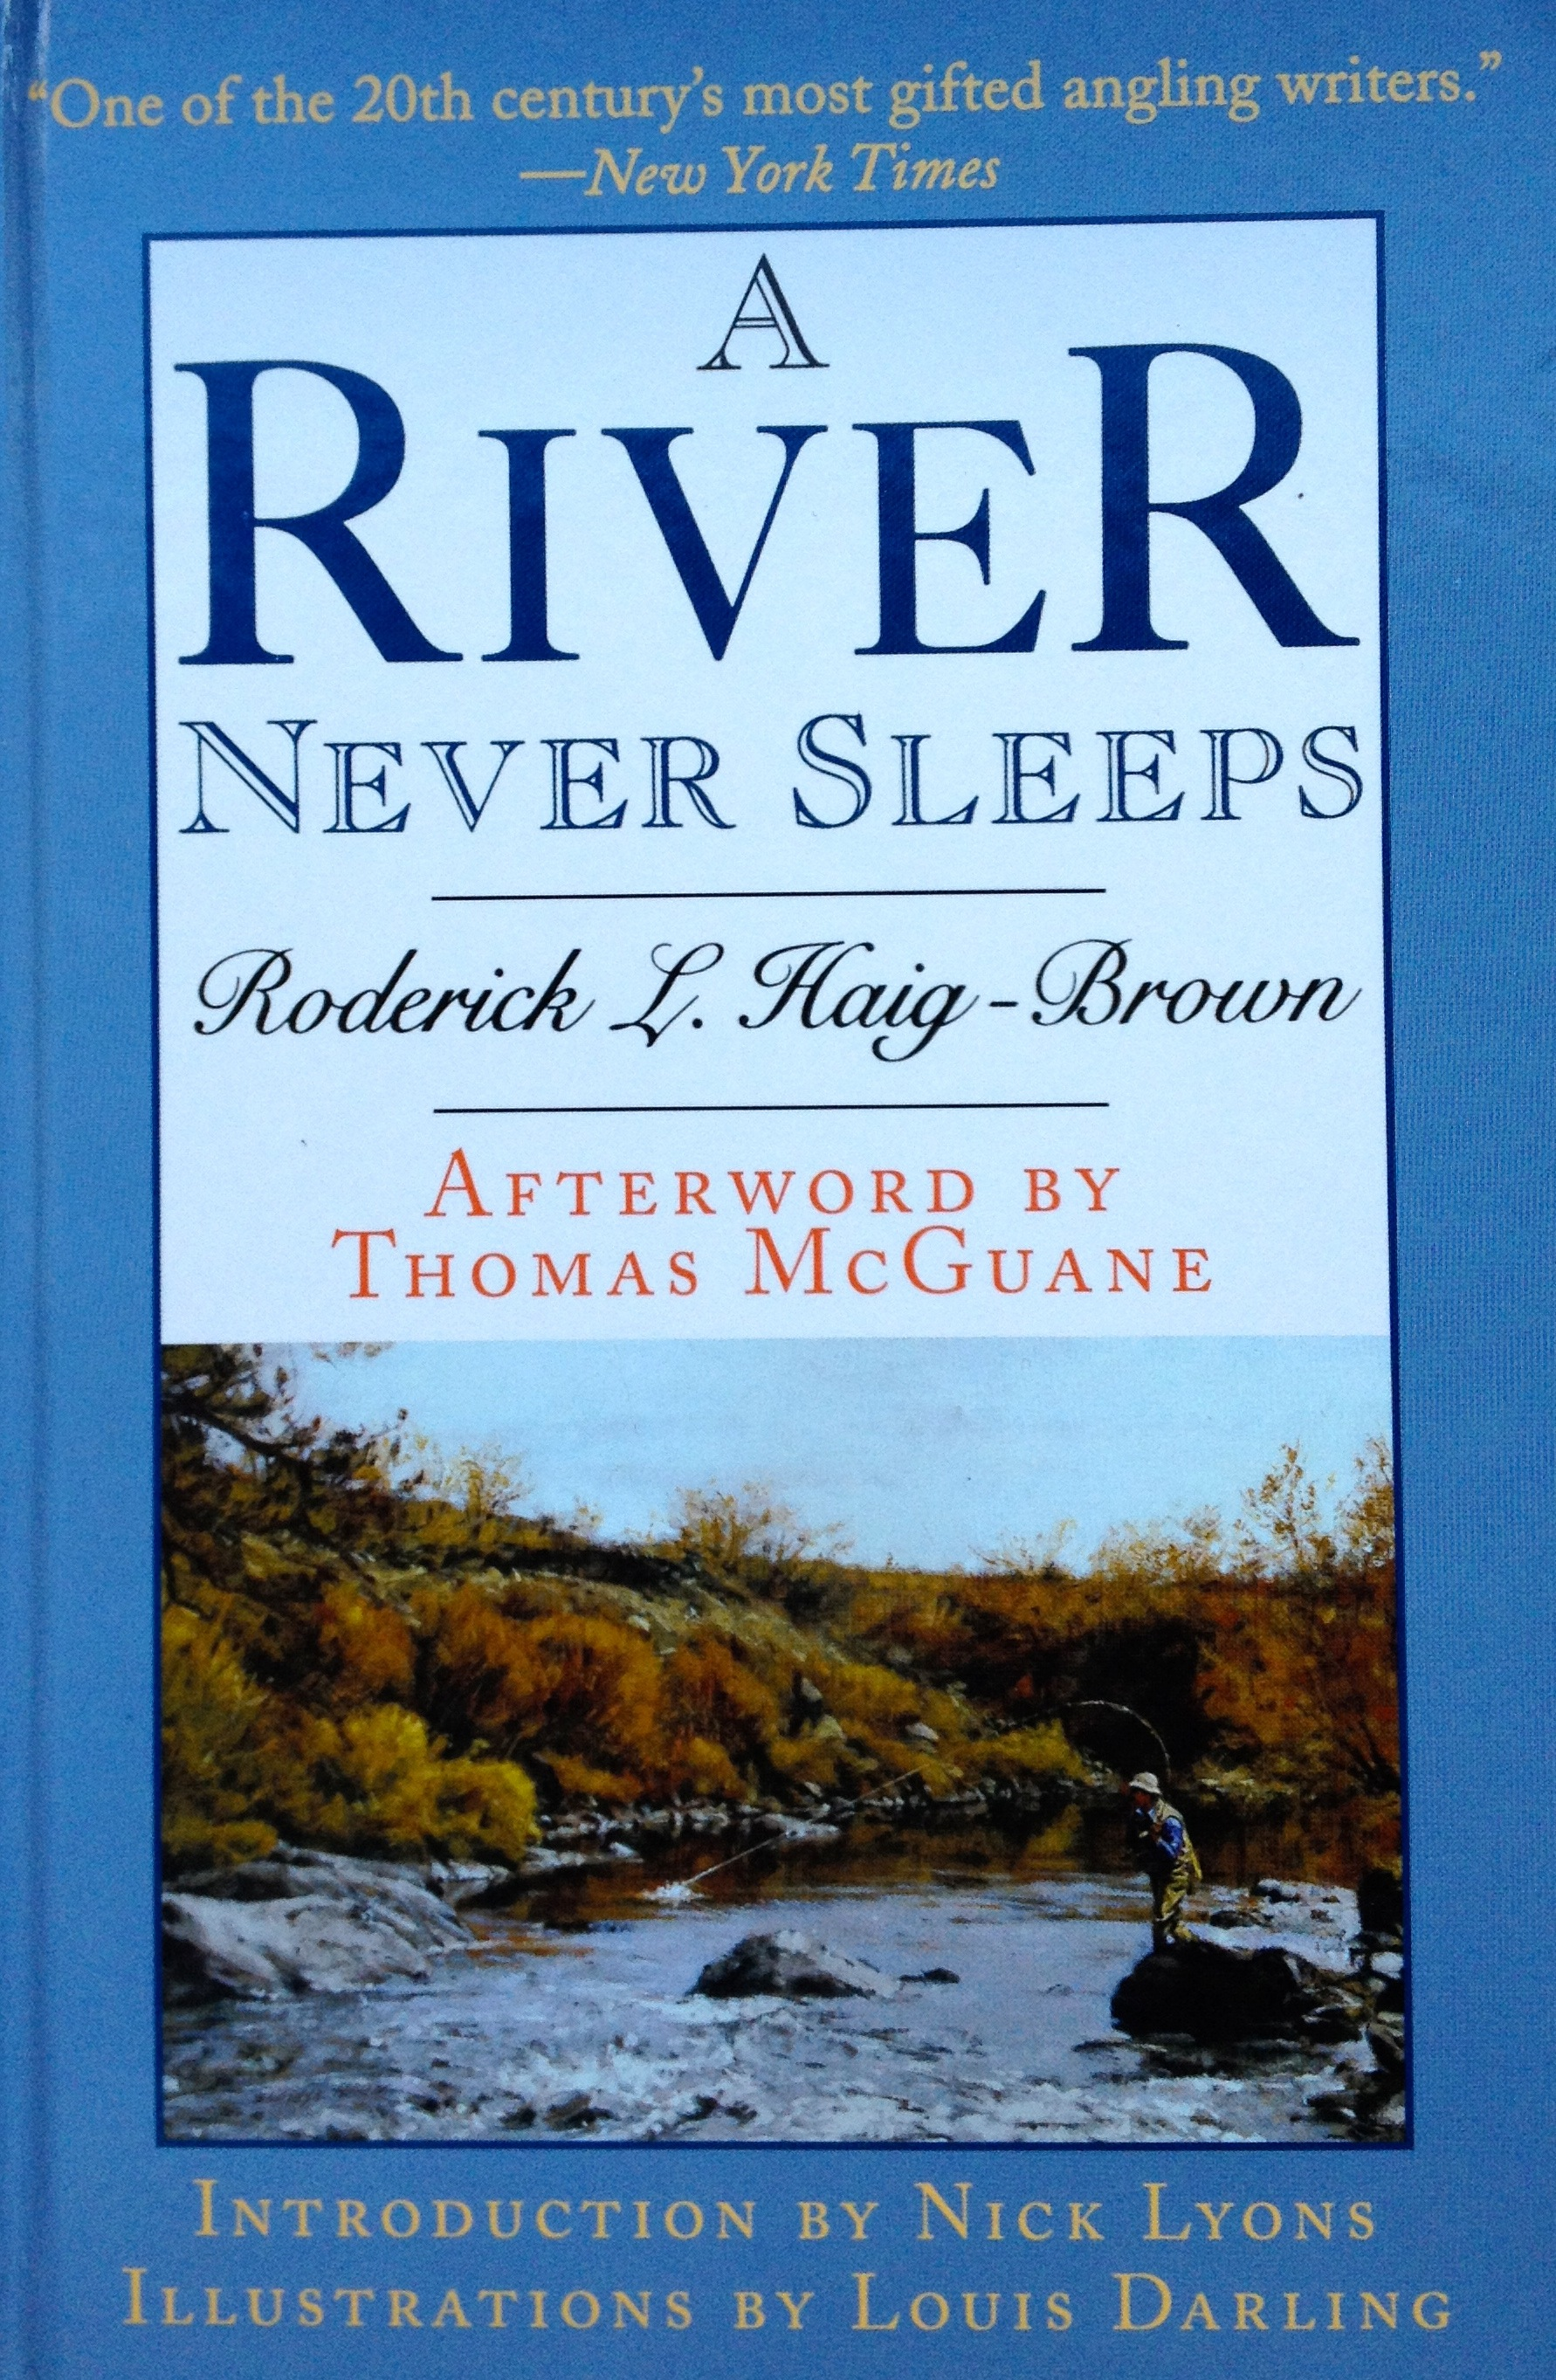 A River Never Sleeps